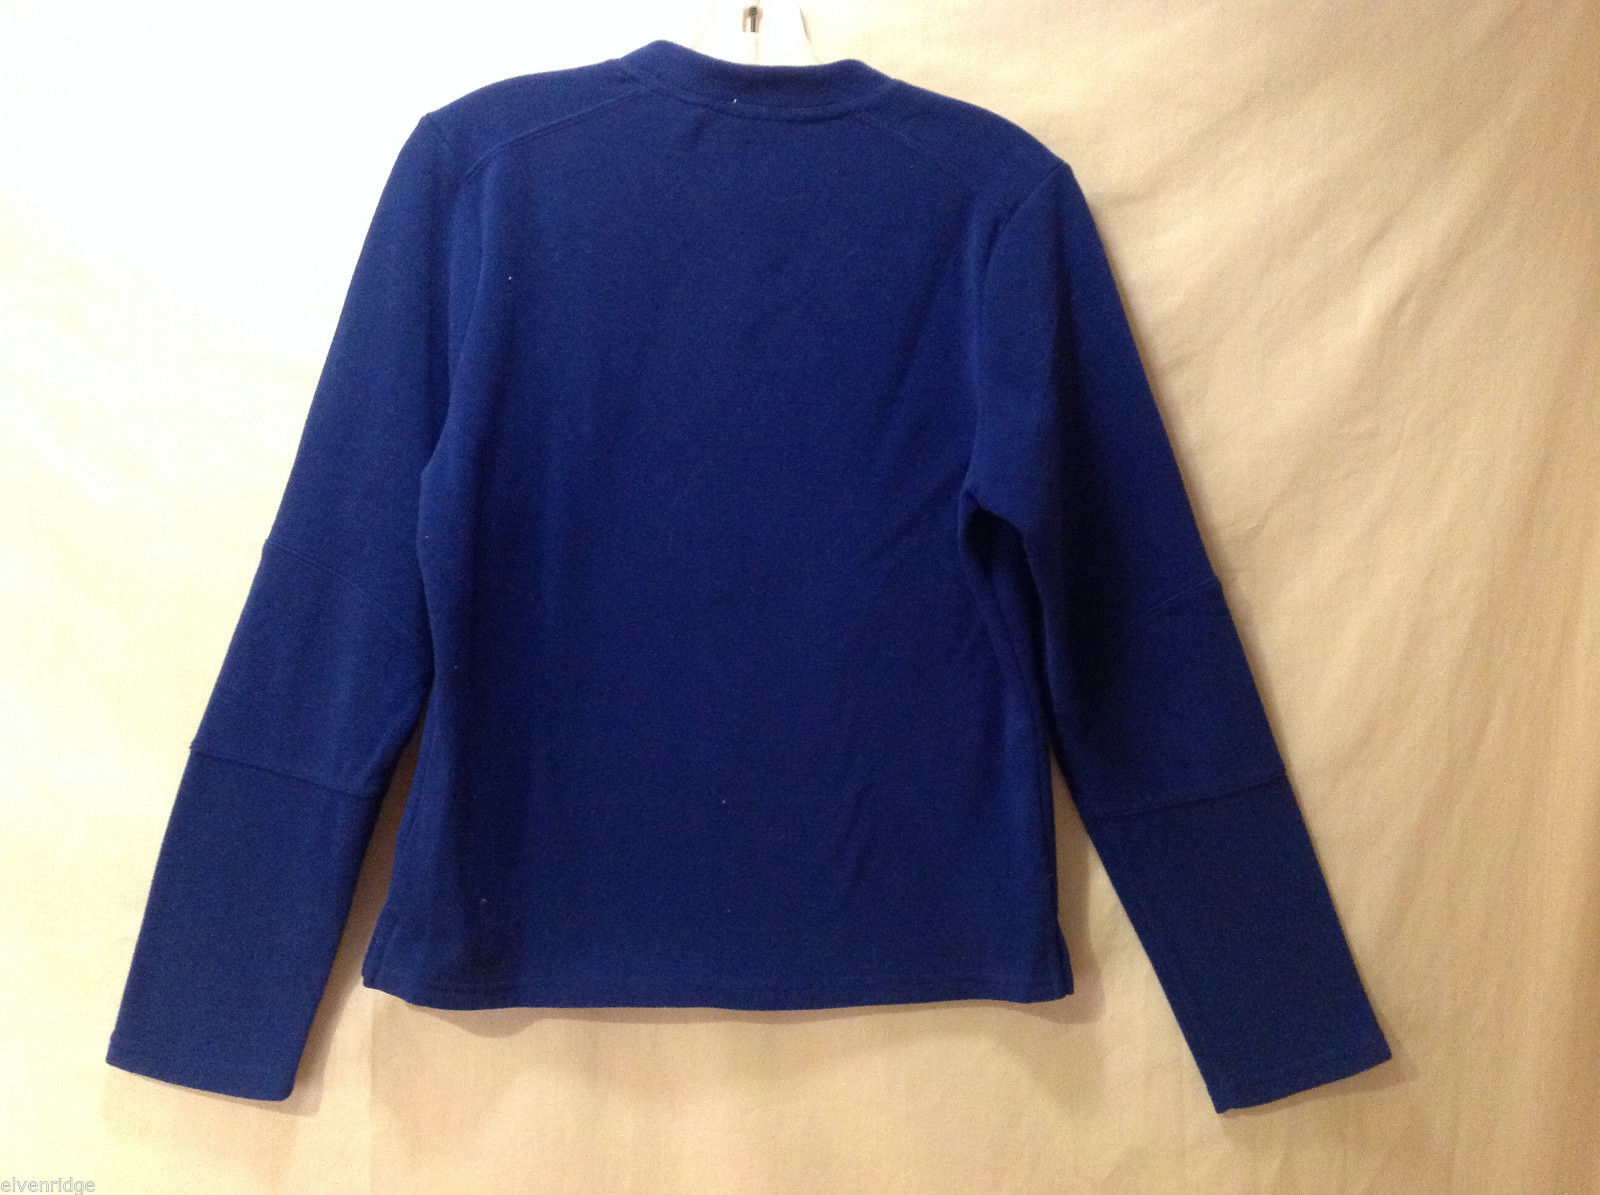 NY Jeans Women's Size S V-Neck Sweatshirt Vivid Royal Blue Fleece Long Sleeves